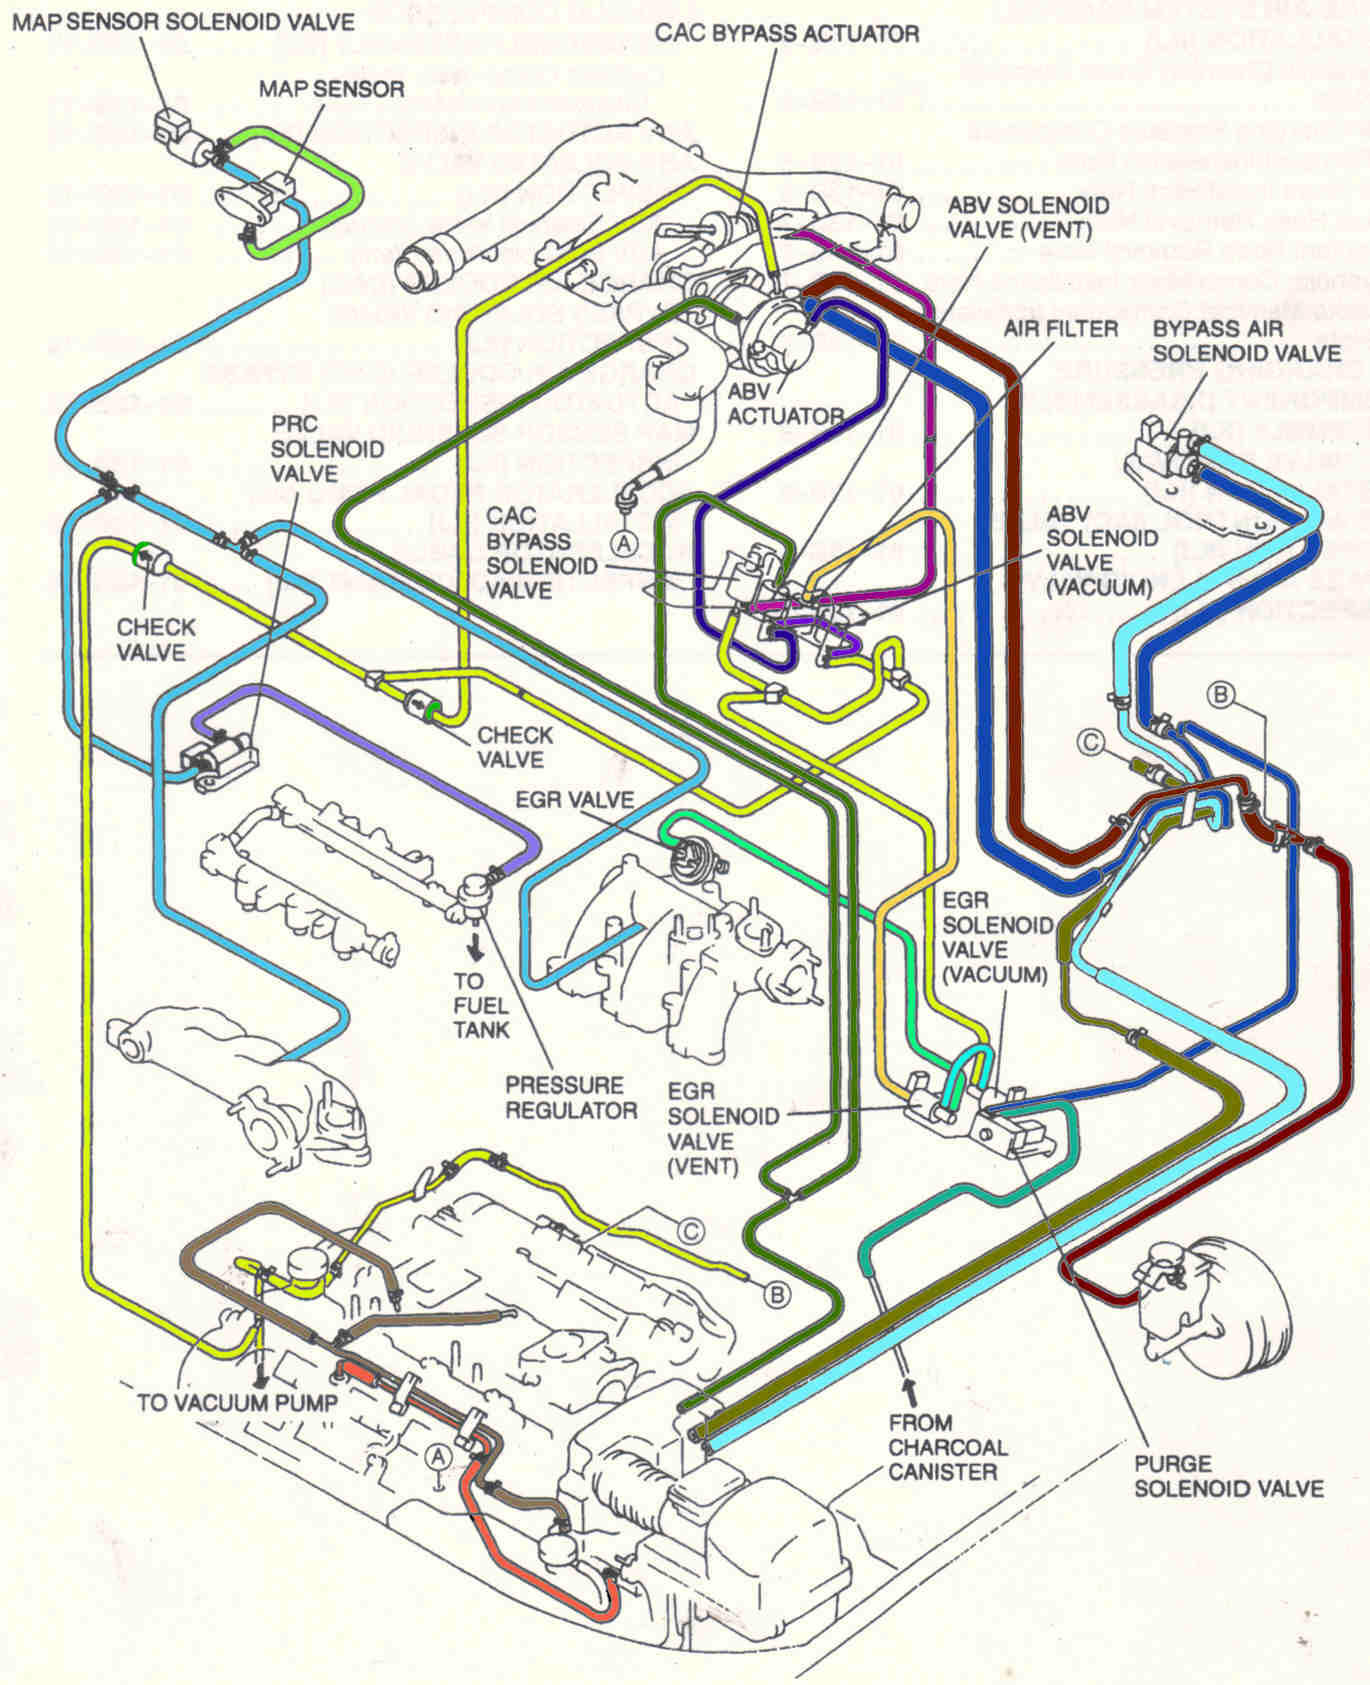 96up kj vachose 300zx wiring diagram dolgular com  at aneh.co